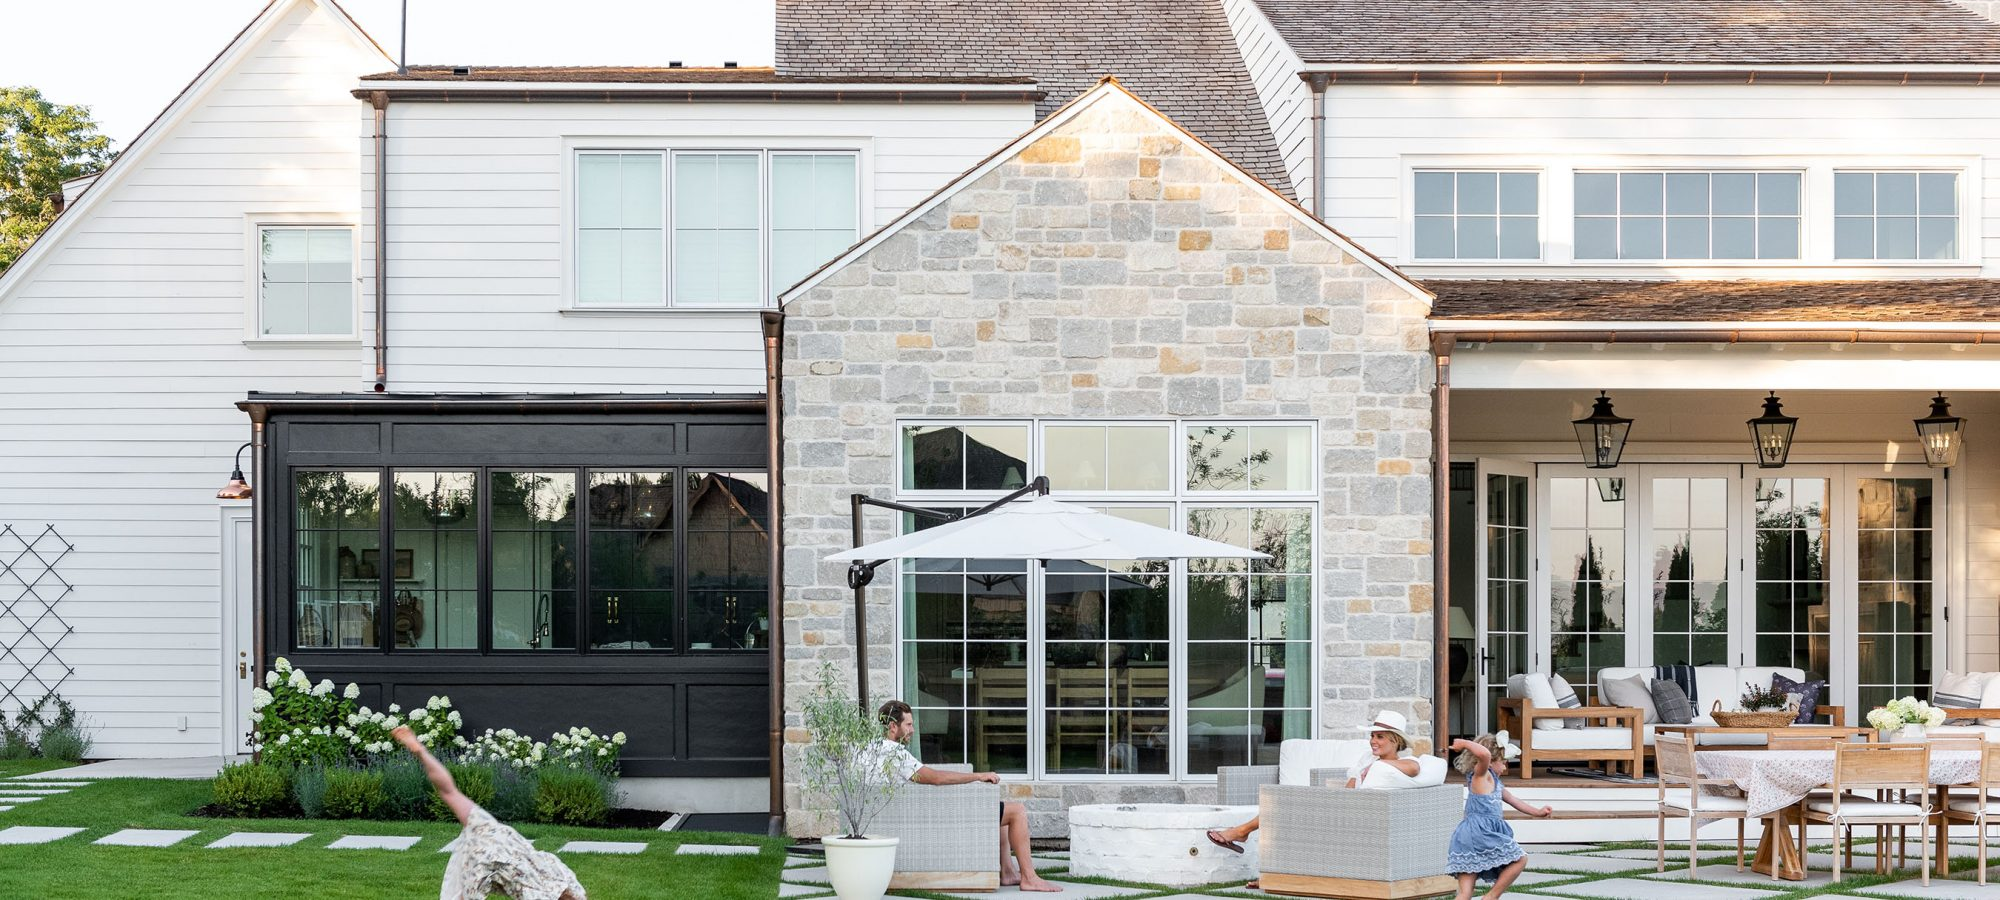 The McGee Home: Our Backyard Video Tour